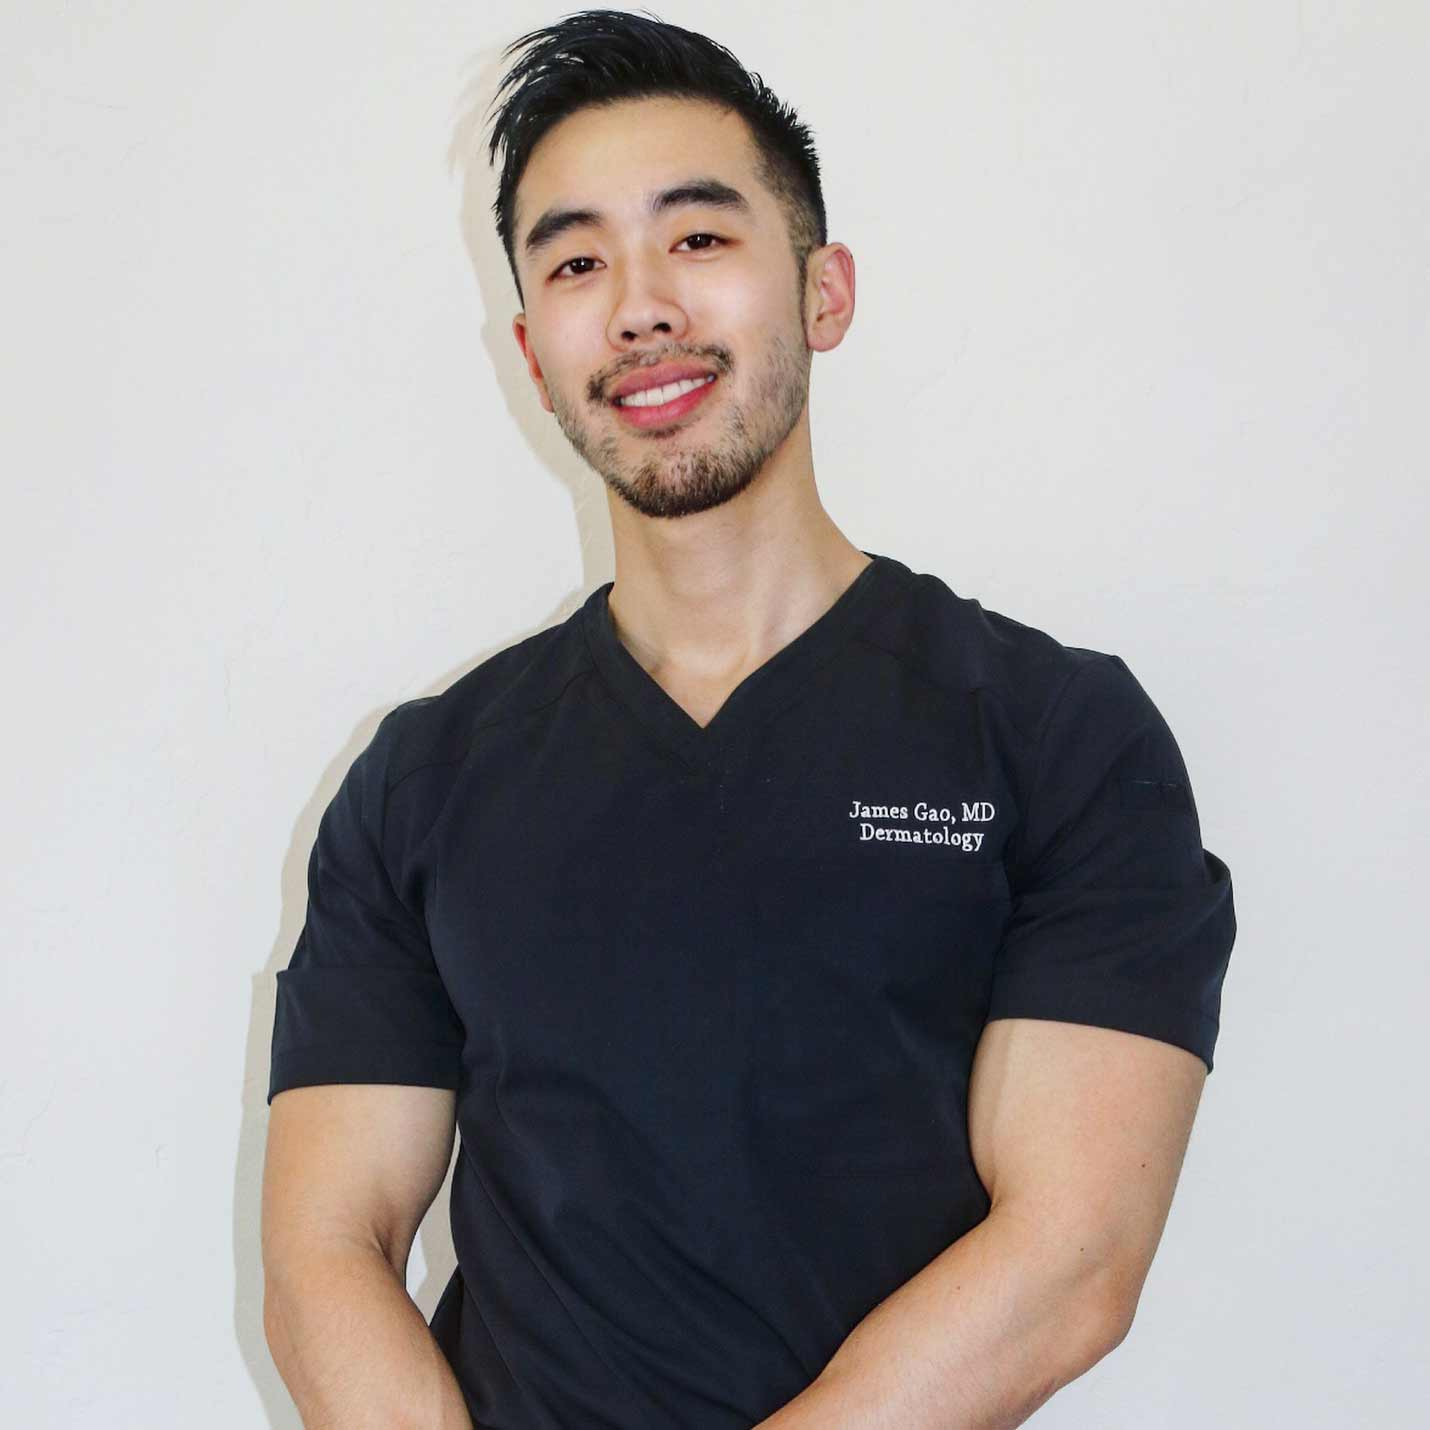 James Gao, MD